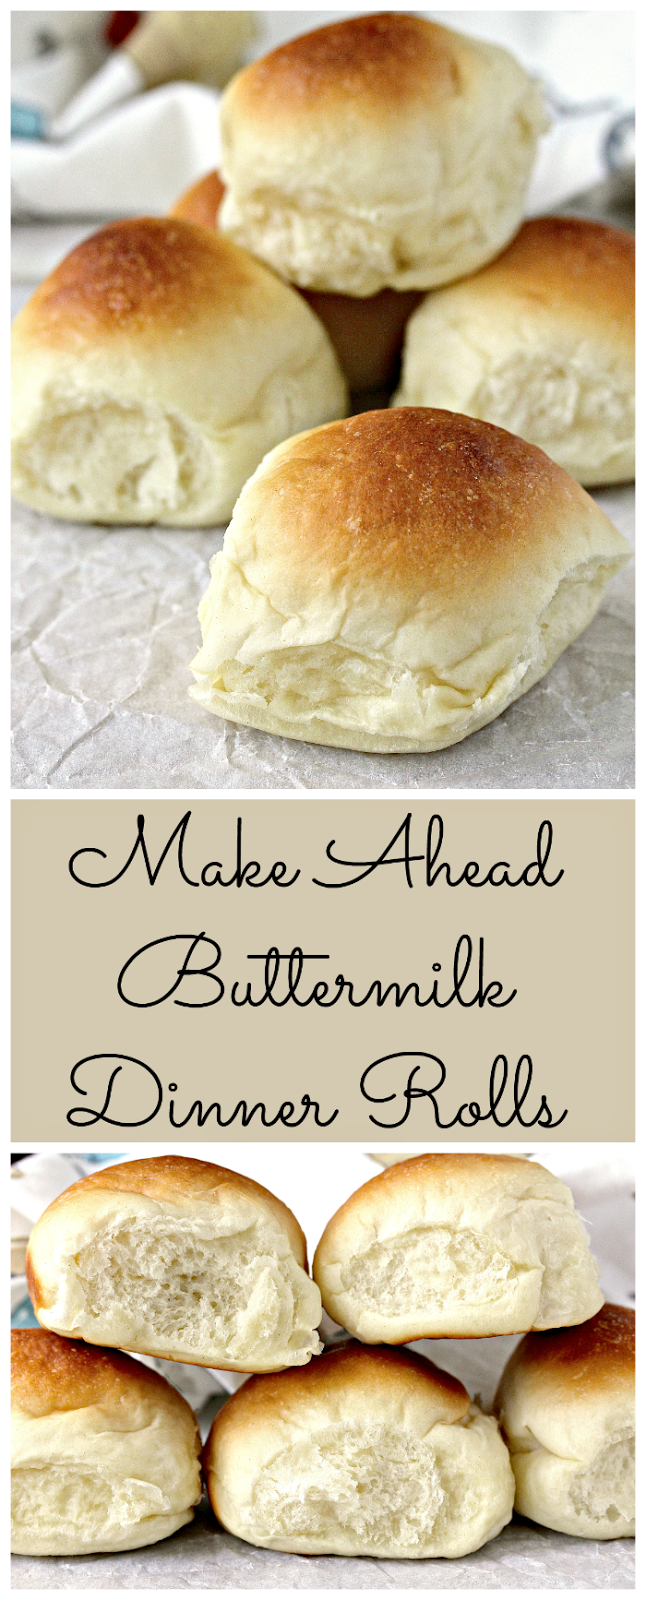 Make Ahead Buttermilk Dinner Rolls